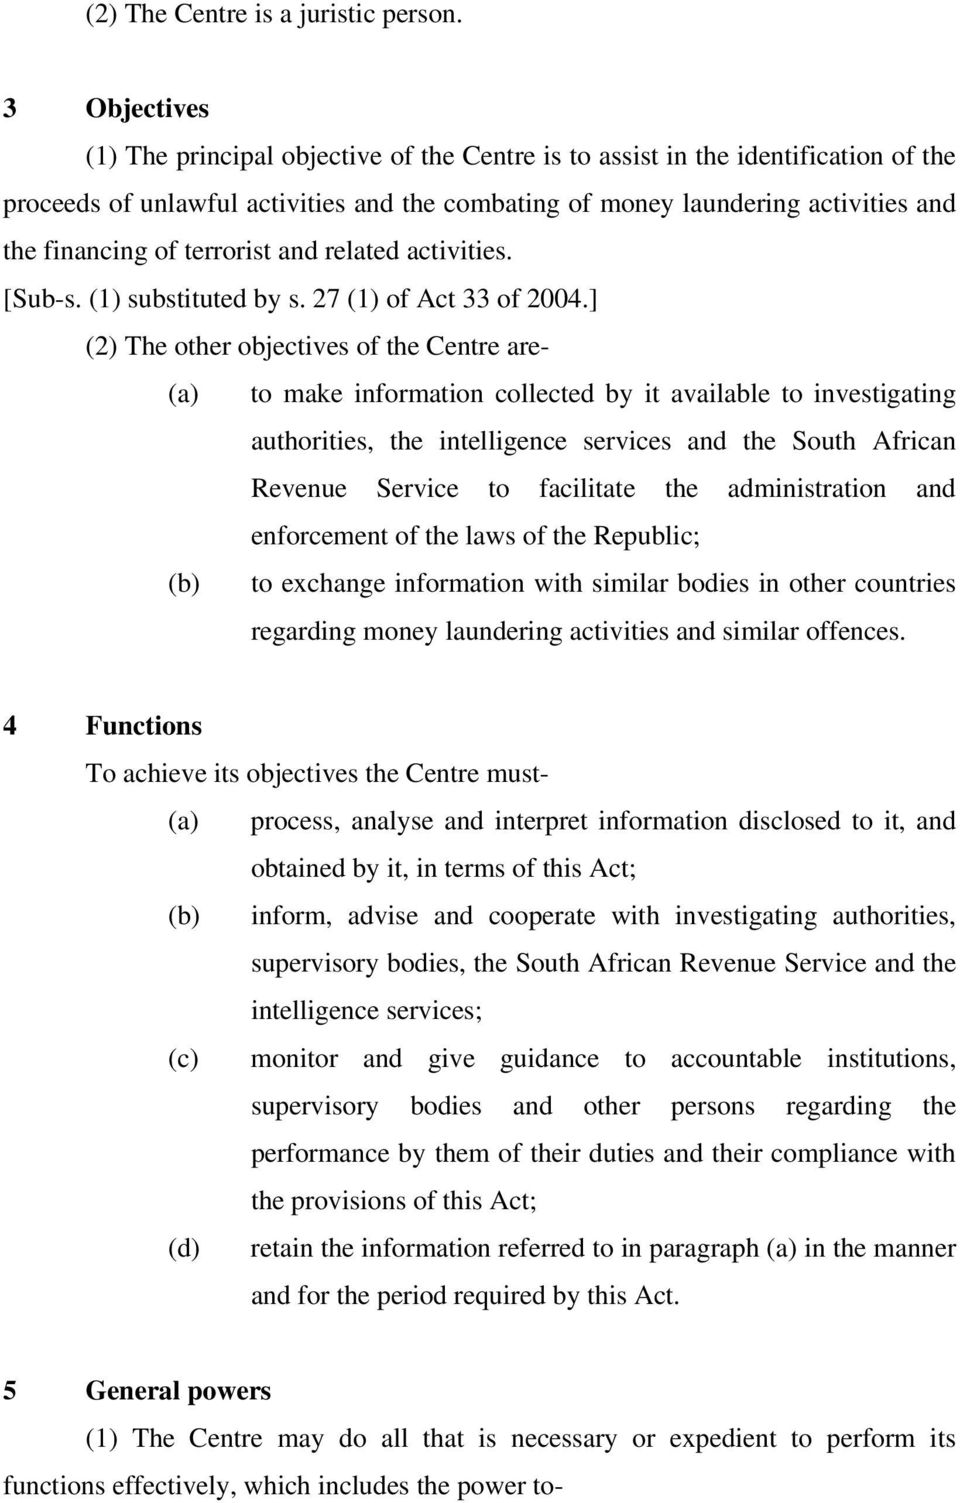 terrorist and related activities. [Sub-s. (1) substituted by s. 27 (1) of Act 33 of 2004.